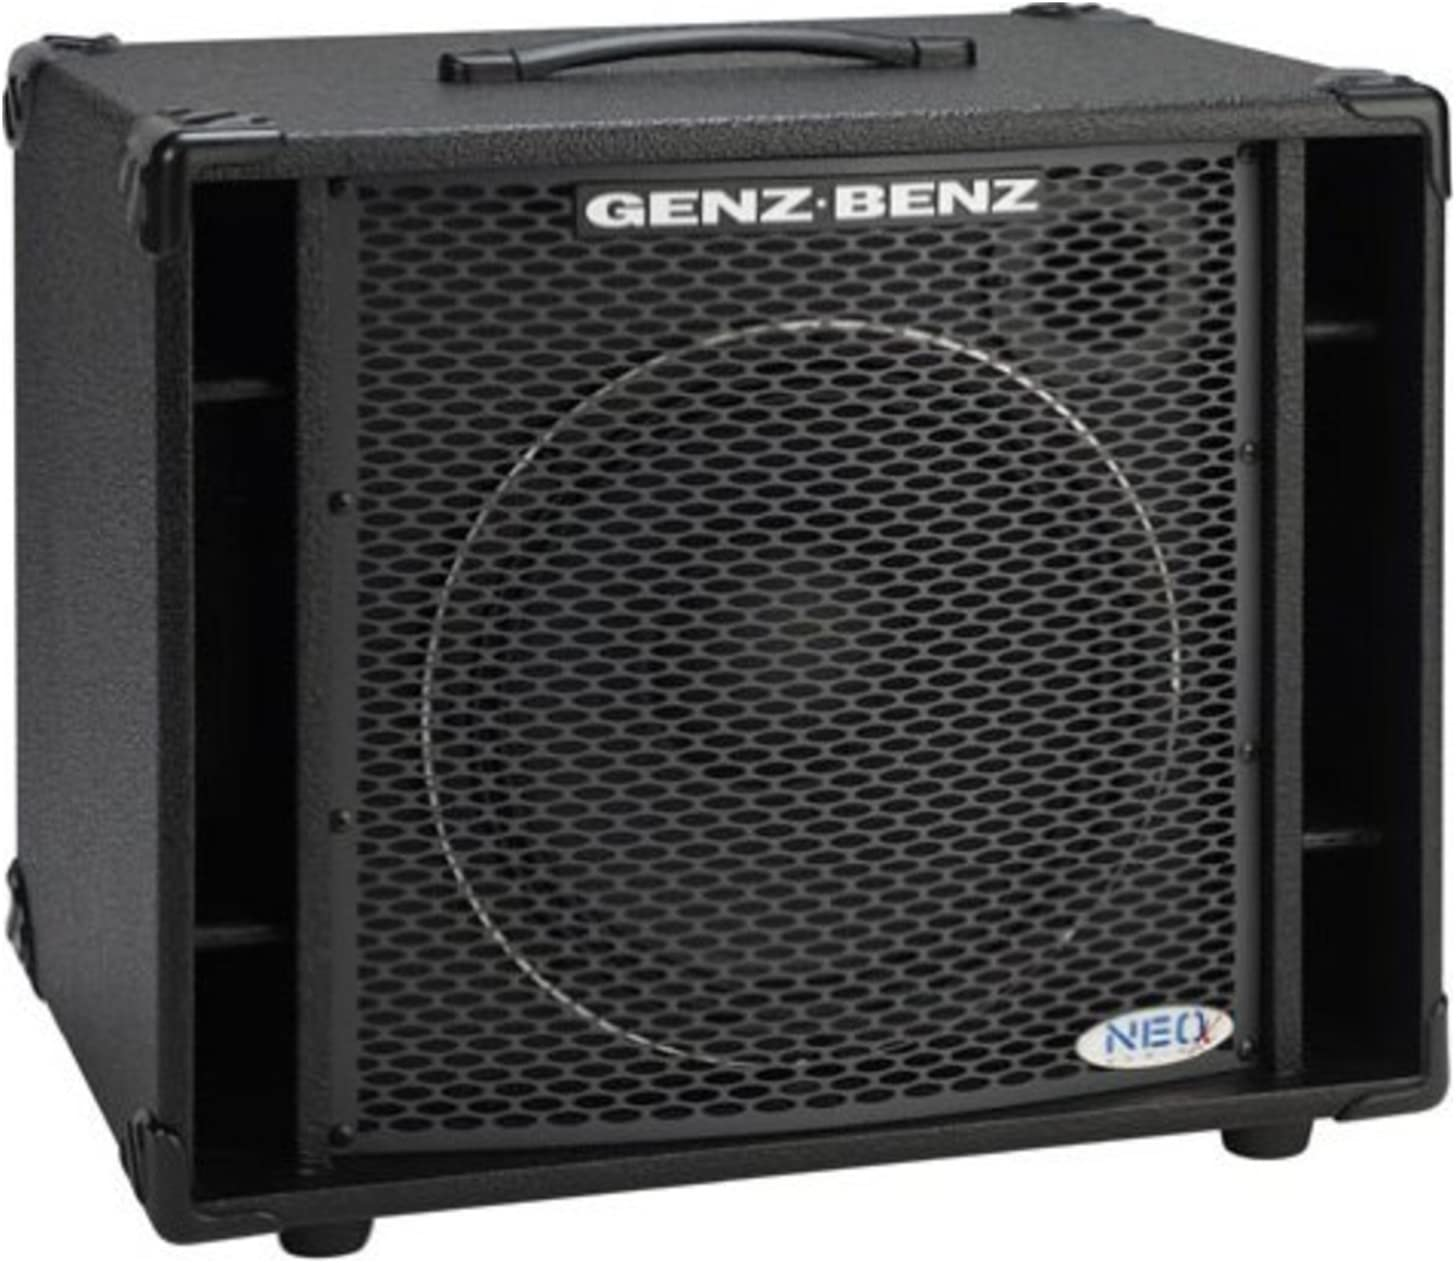 Genz Benz Neox OFFicial store NEOX-112T 1 x Cabinet Inches Free shipping / New Amplifier 12 Bass